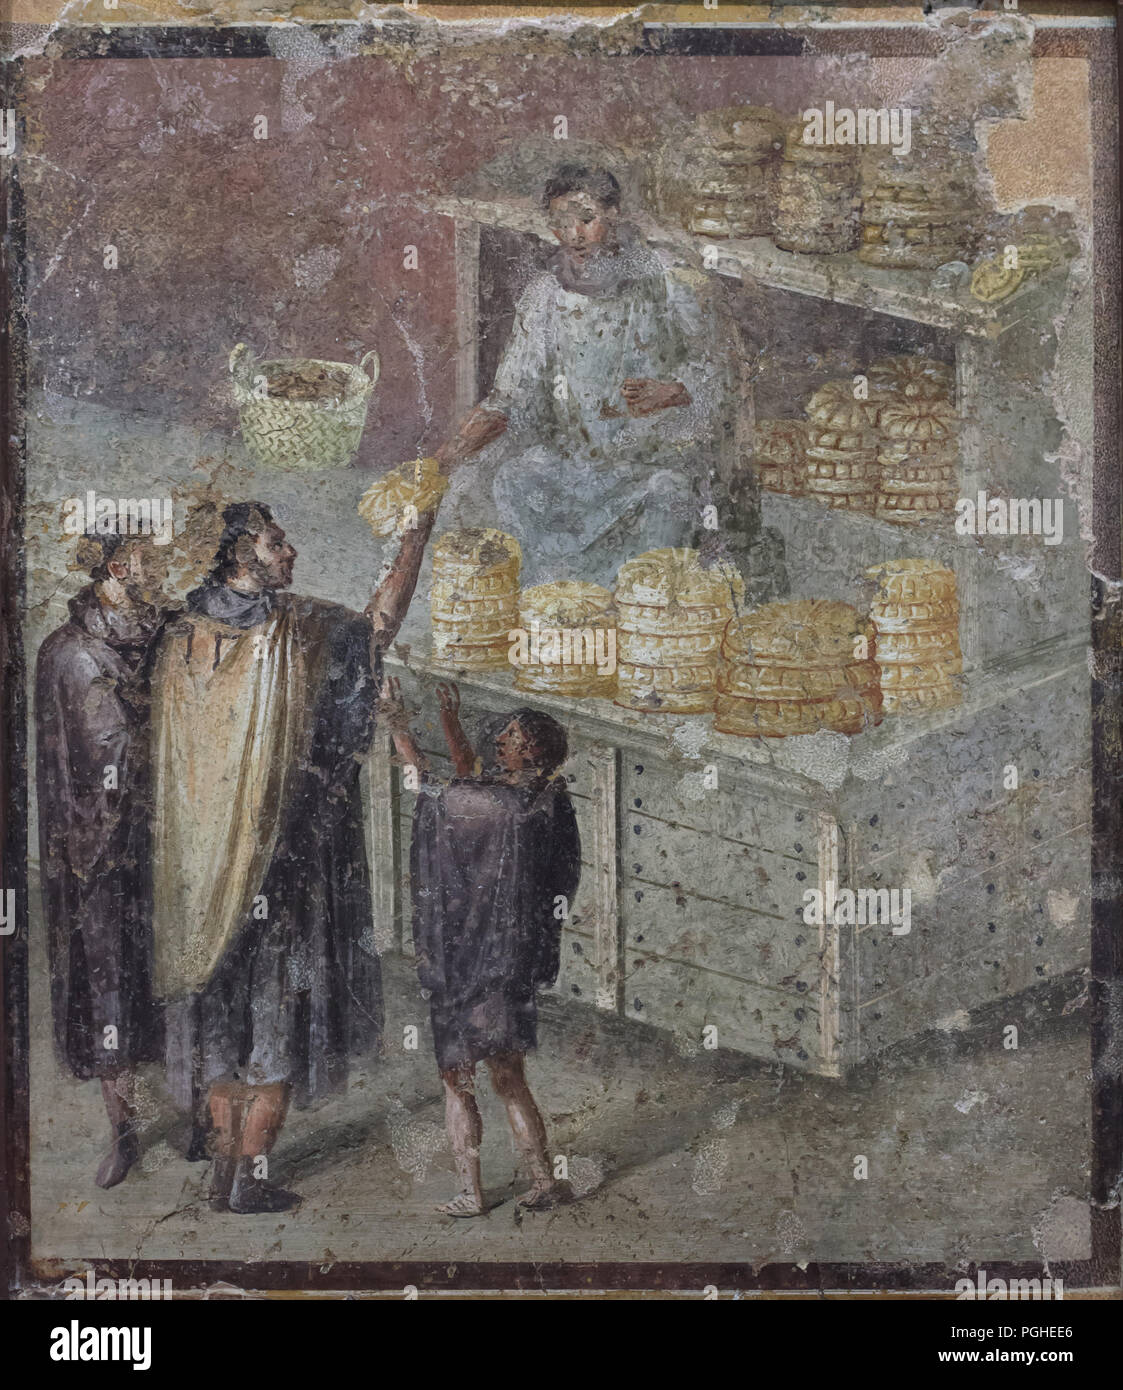 Roman Bakery Depicted In The Roman Fresco From In Pompeii Now On Display In The National Archaeological Museum Museo Archeologico Nazionale Di Napoli In Naples Campania Italy Stock Photo Alamy